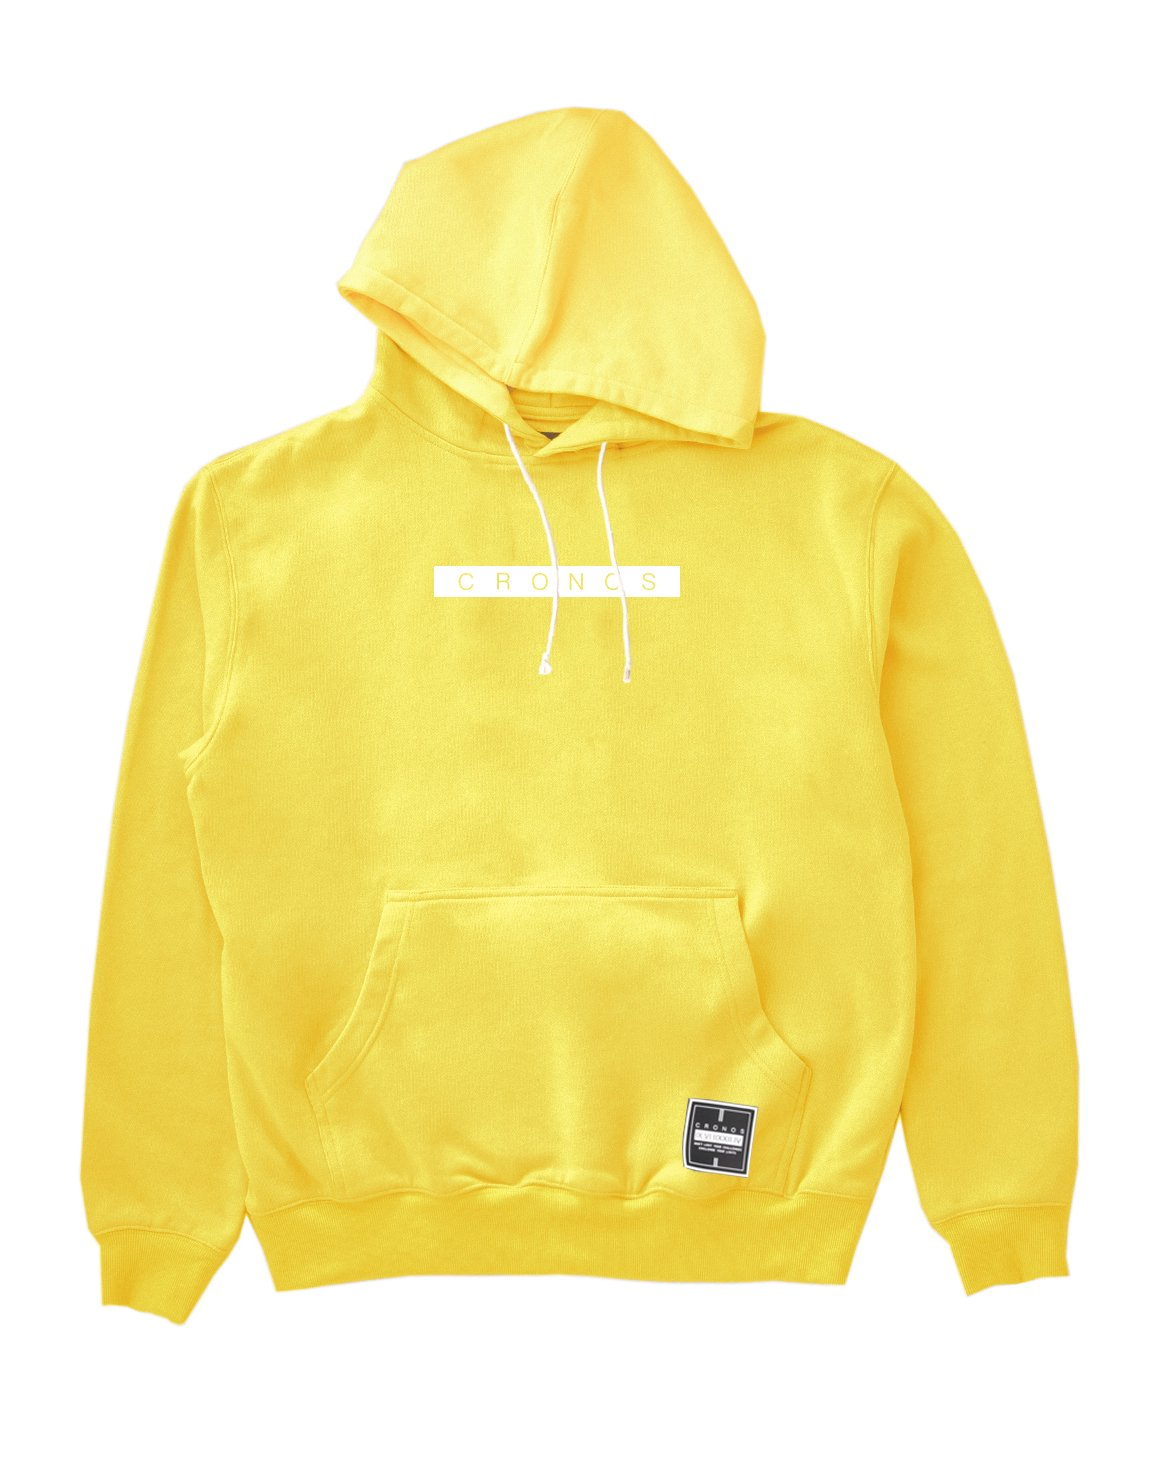 <img class='new_mark_img1' src='https://img.shop-pro.jp/img/new/icons1.gif' style='border:none;display:inline;margin:0px;padding:0px;width:auto;' />CRONOS BOX LOGO PULL OVER PARKA 【YELLOW】